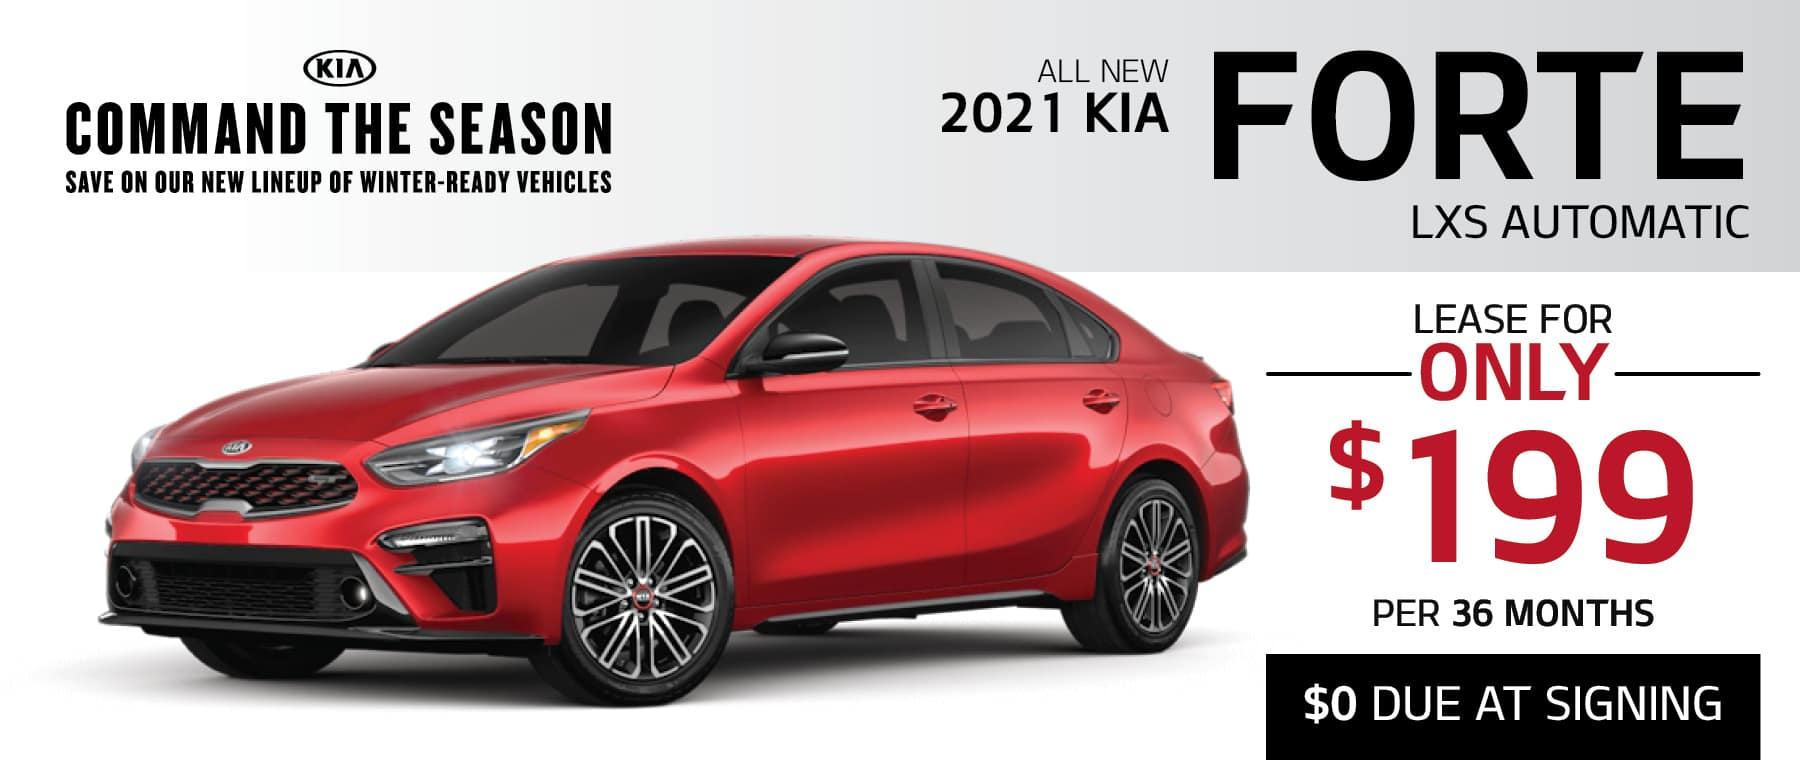 Kia Forte Sedan Lease for only $199 per month at Smail Kia